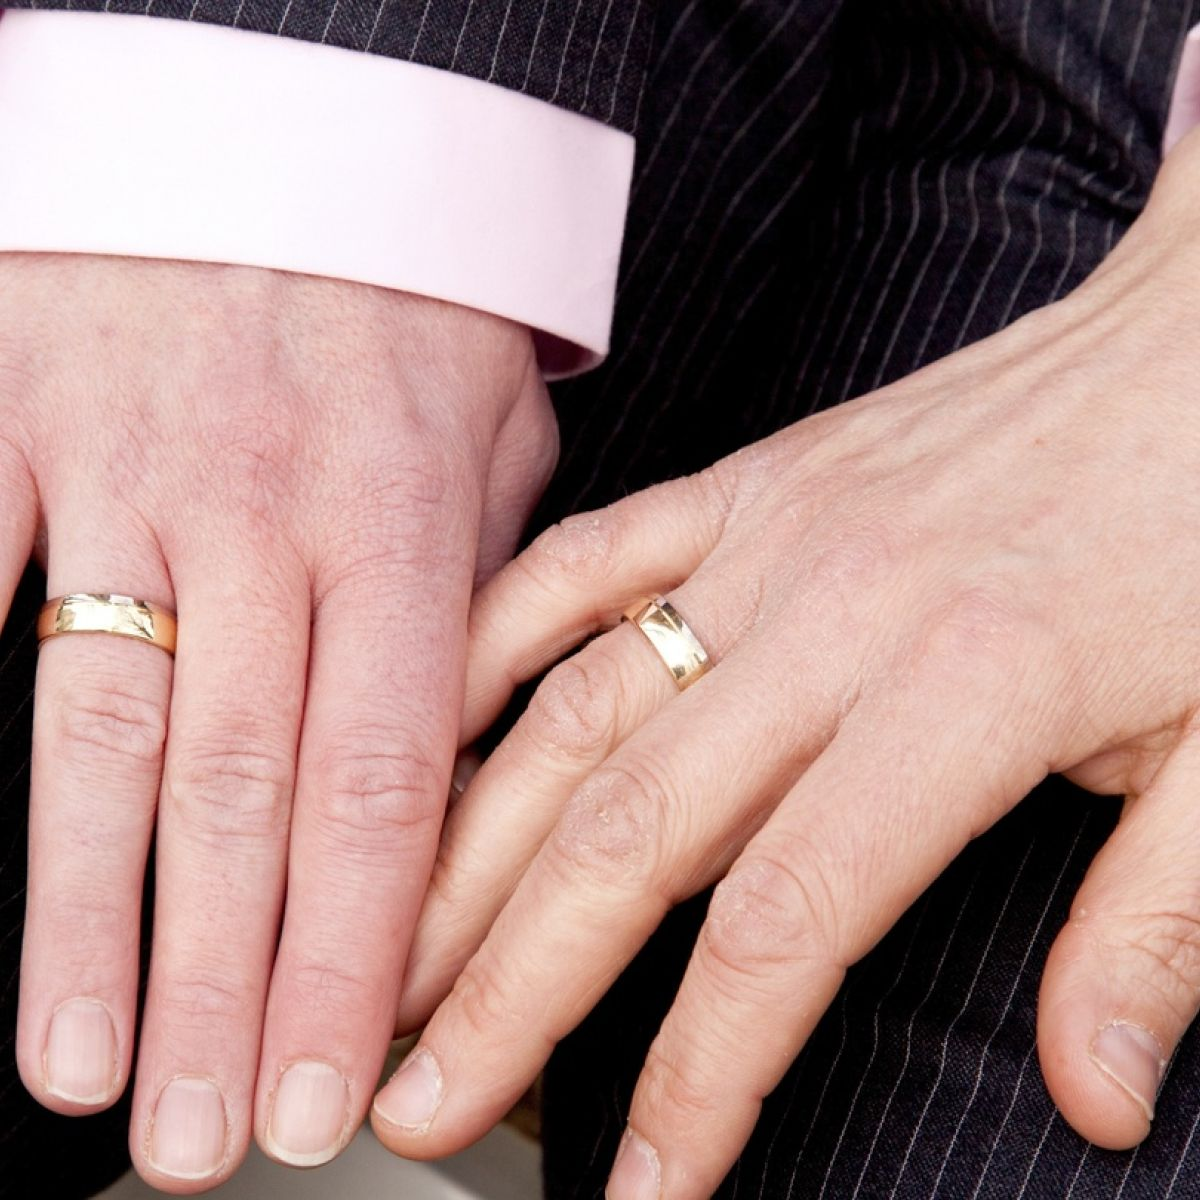 Marriage rate back at boom-time level, figures show